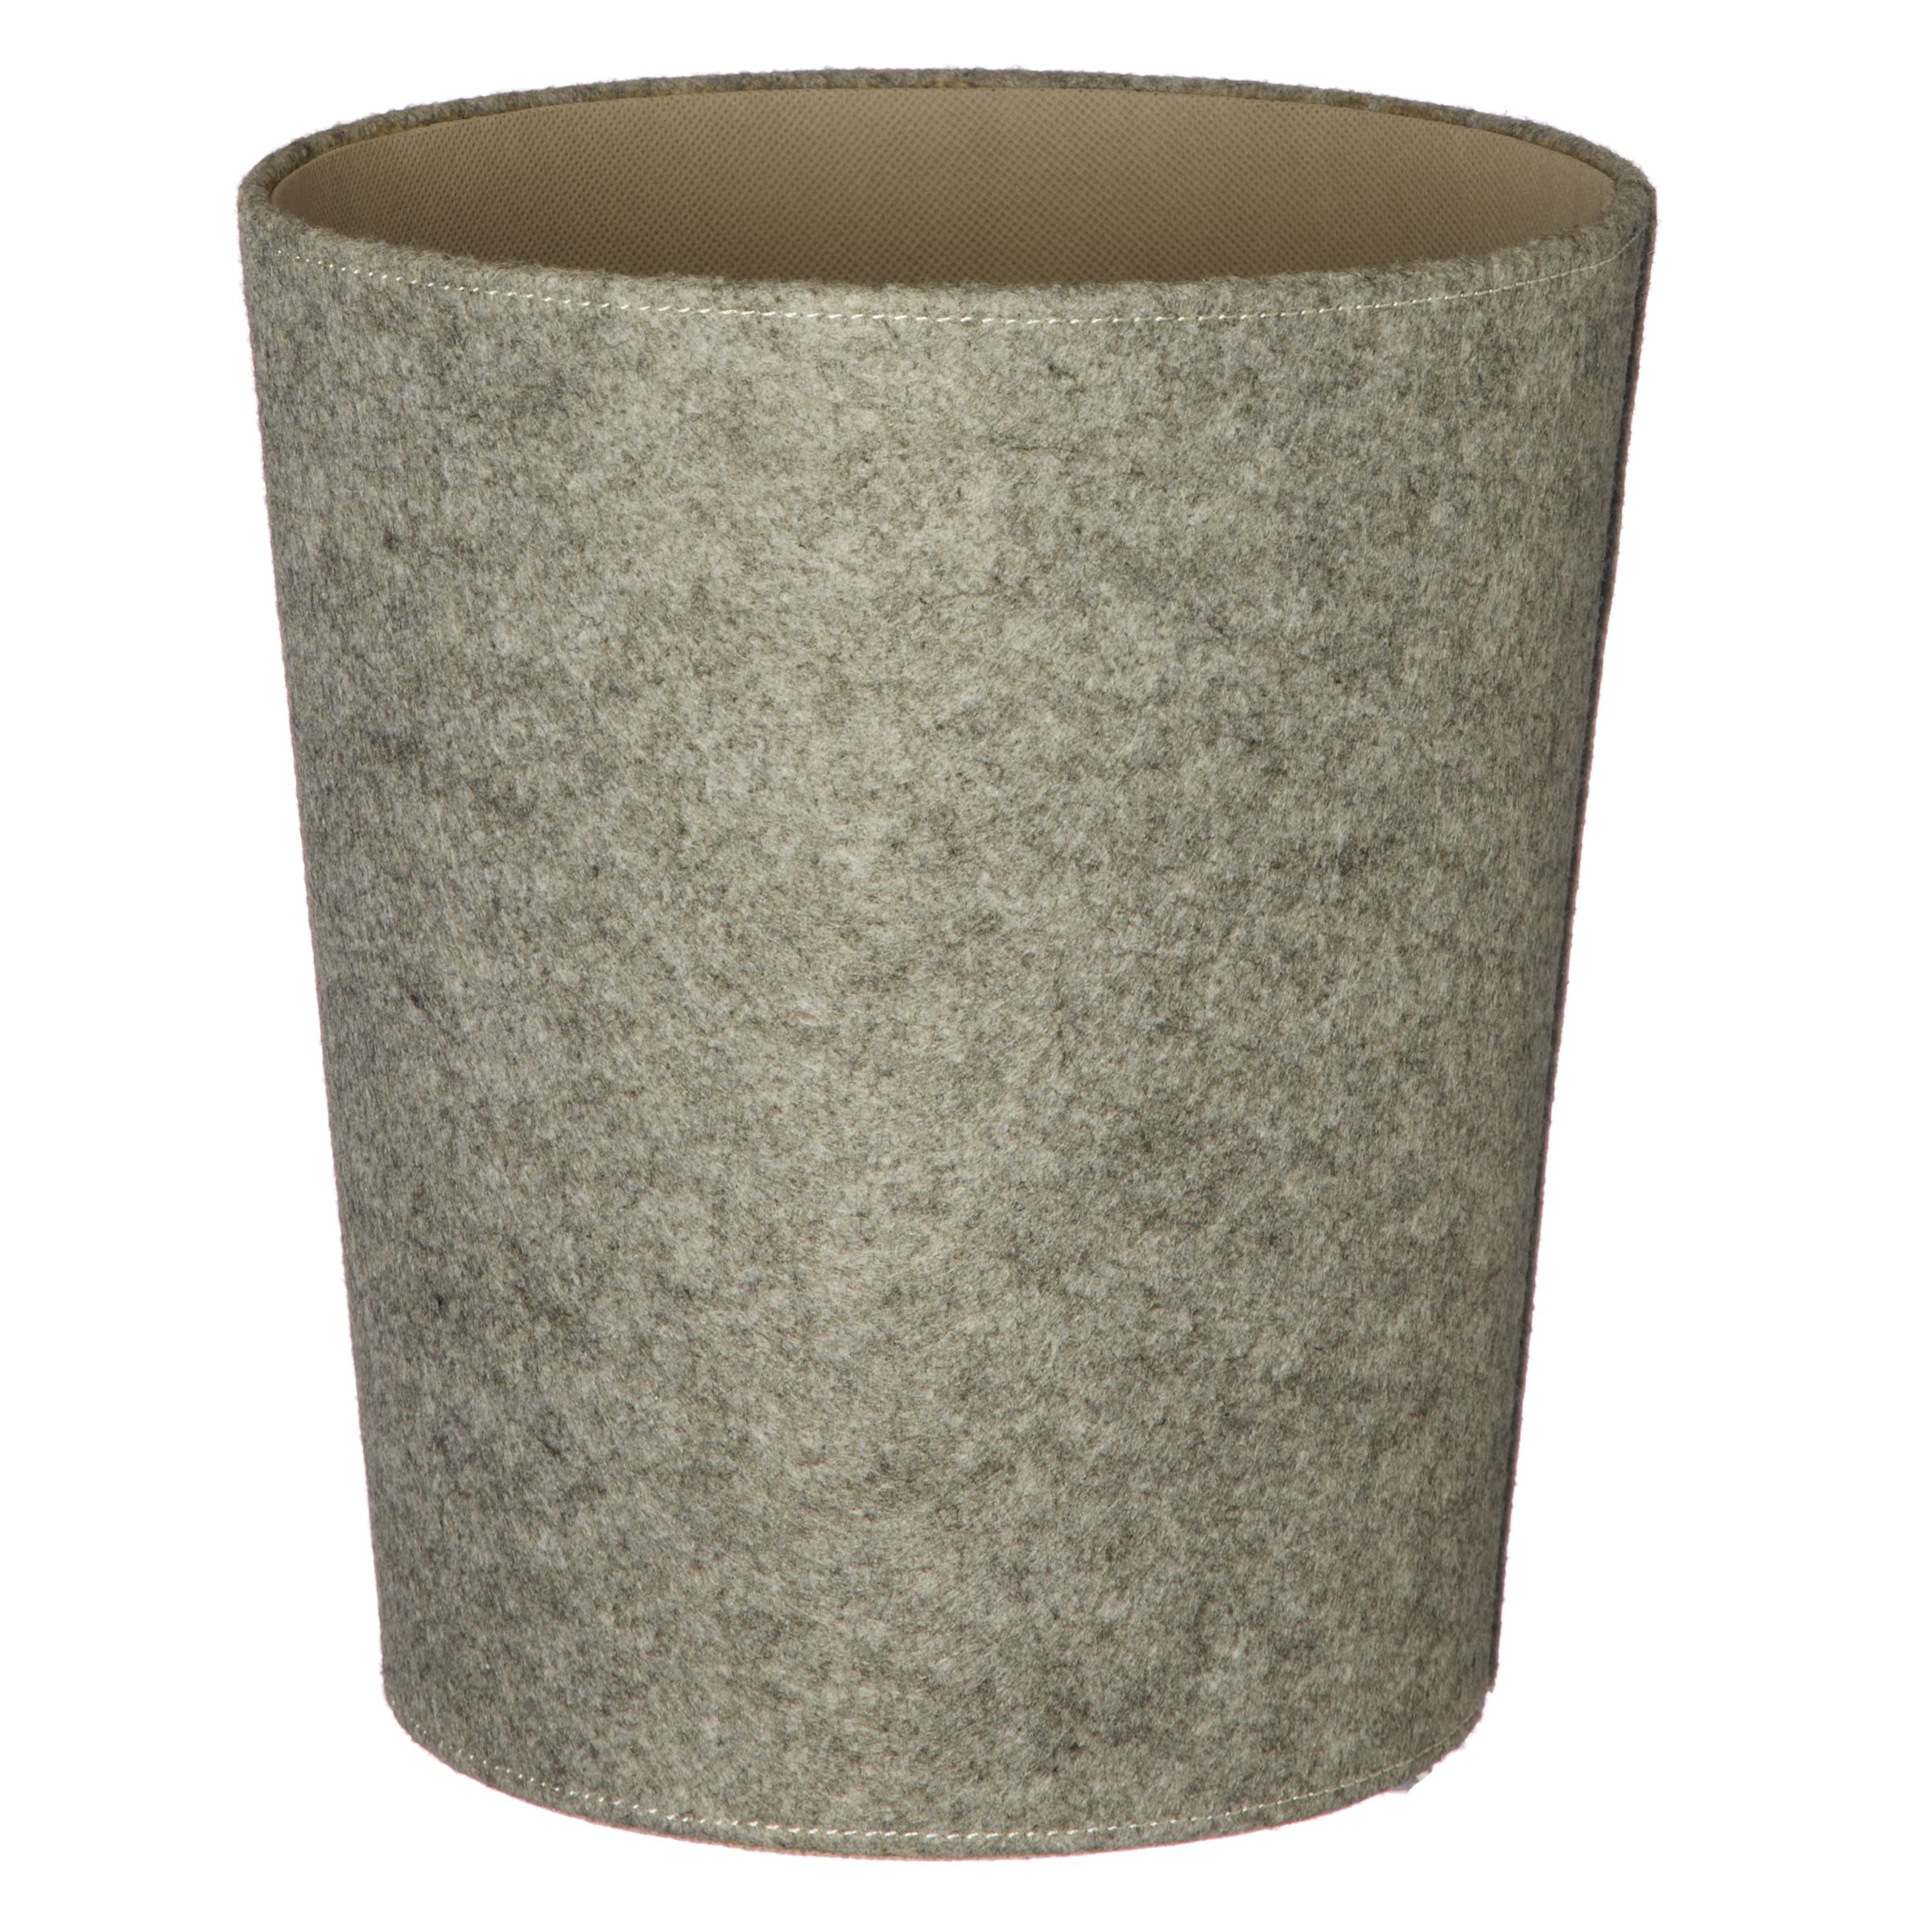 House by John Lewis Grey Felt Wastepaper Bin